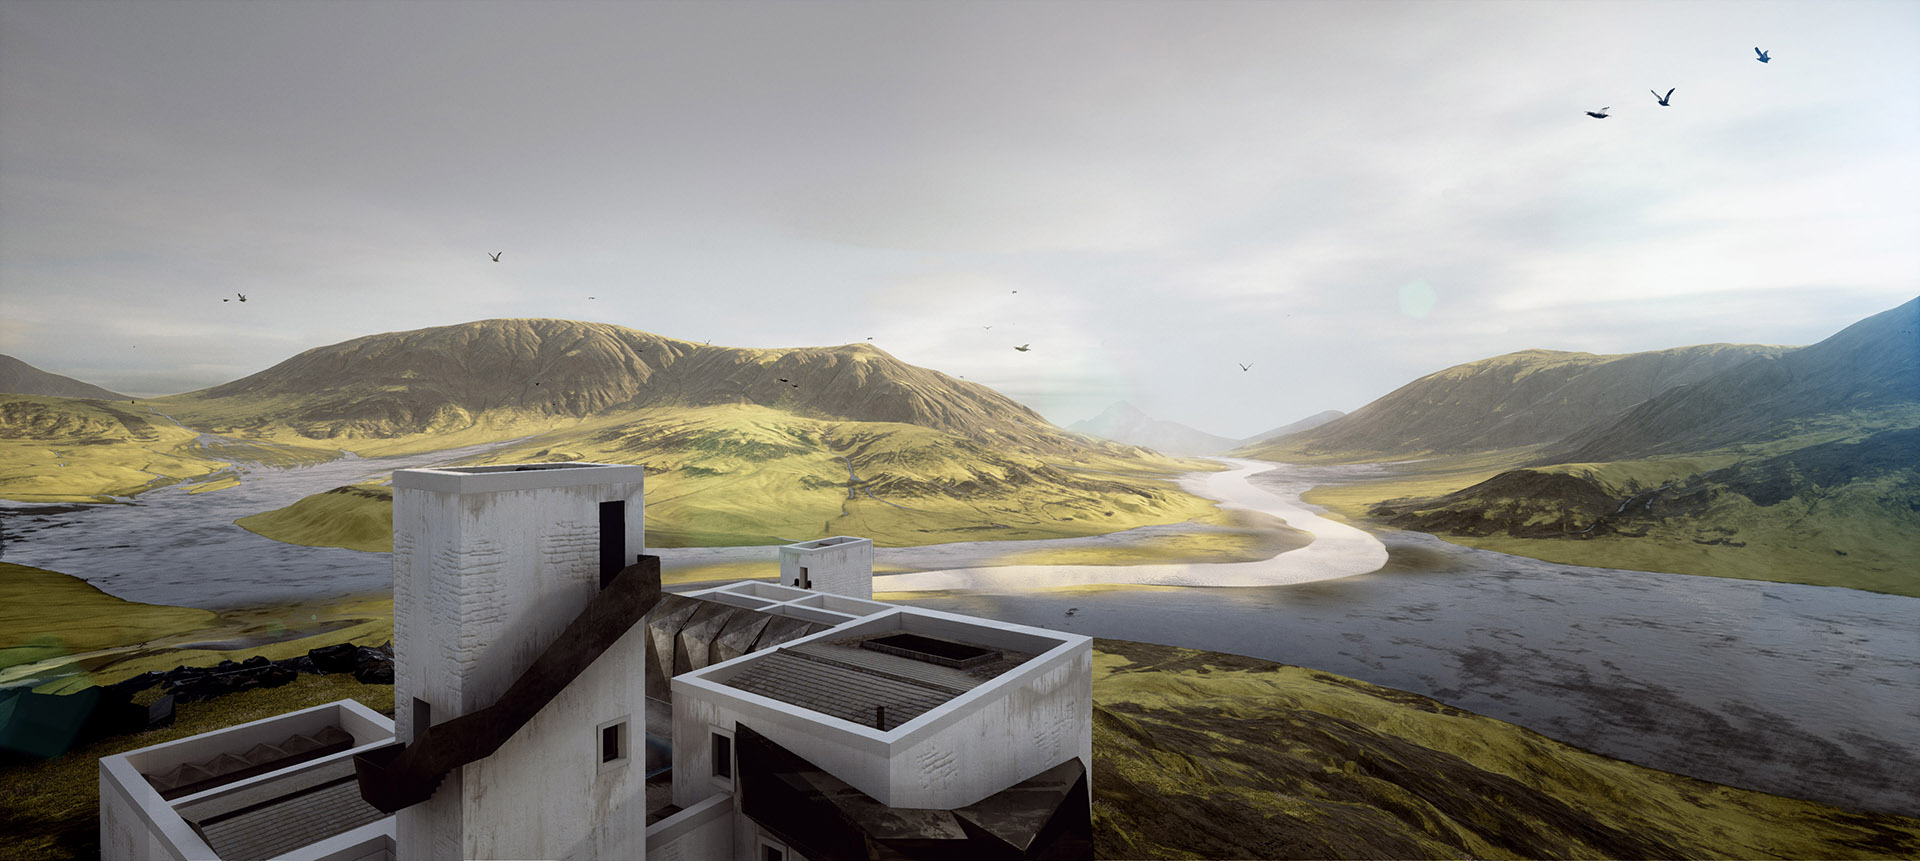 The architecture set amidst the vast nordic landscape